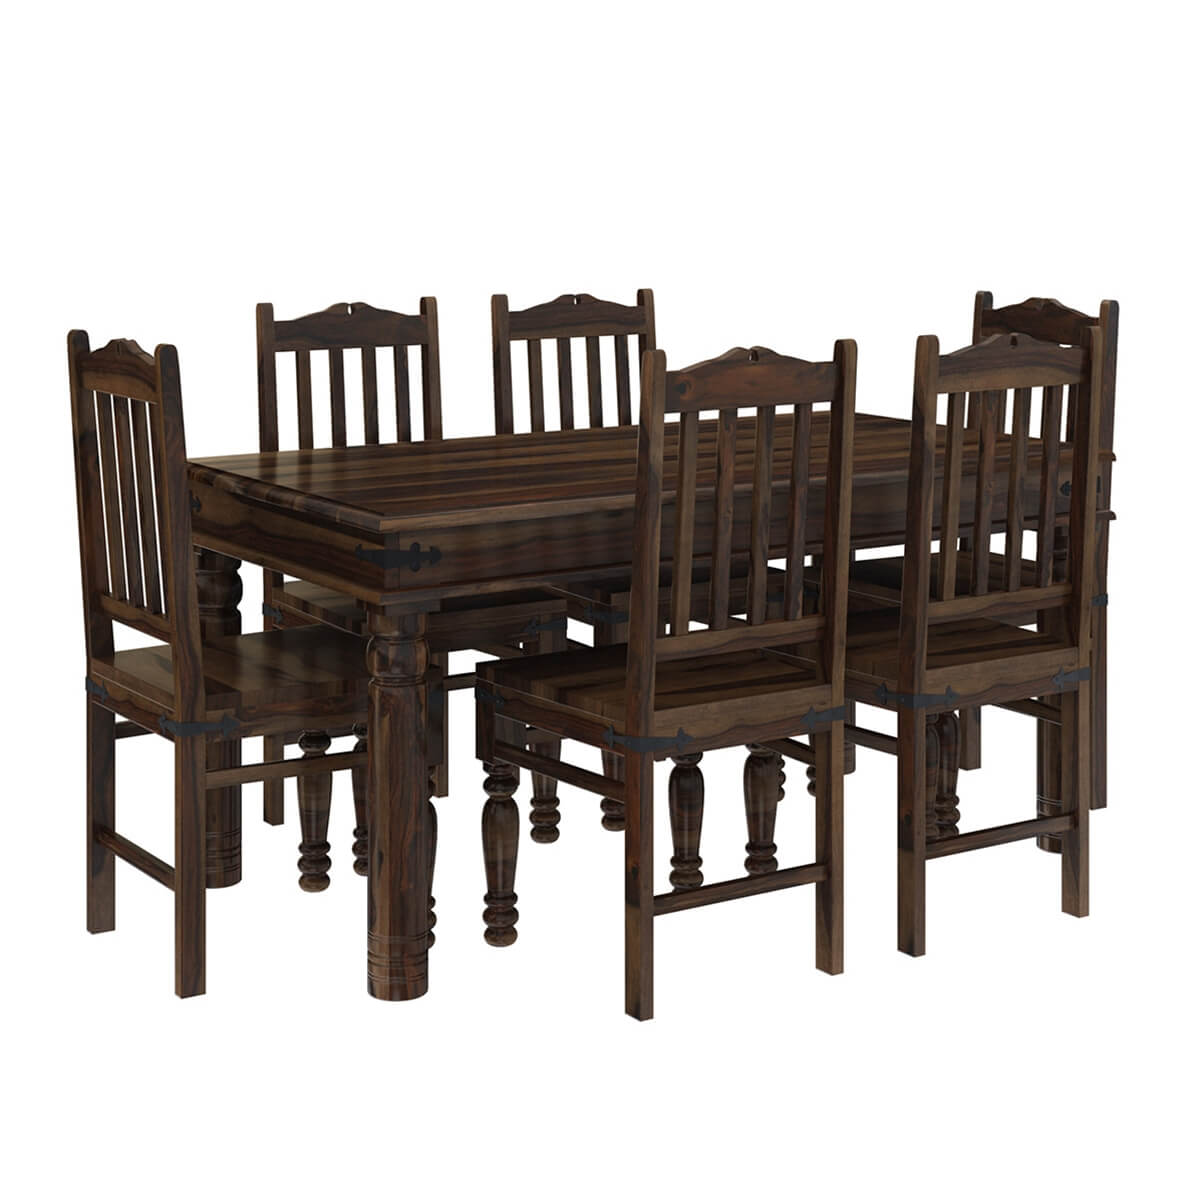 Farmhouse Dining Table: Oklahoma Farmhouse Traditional 5pc Solid Wood Country